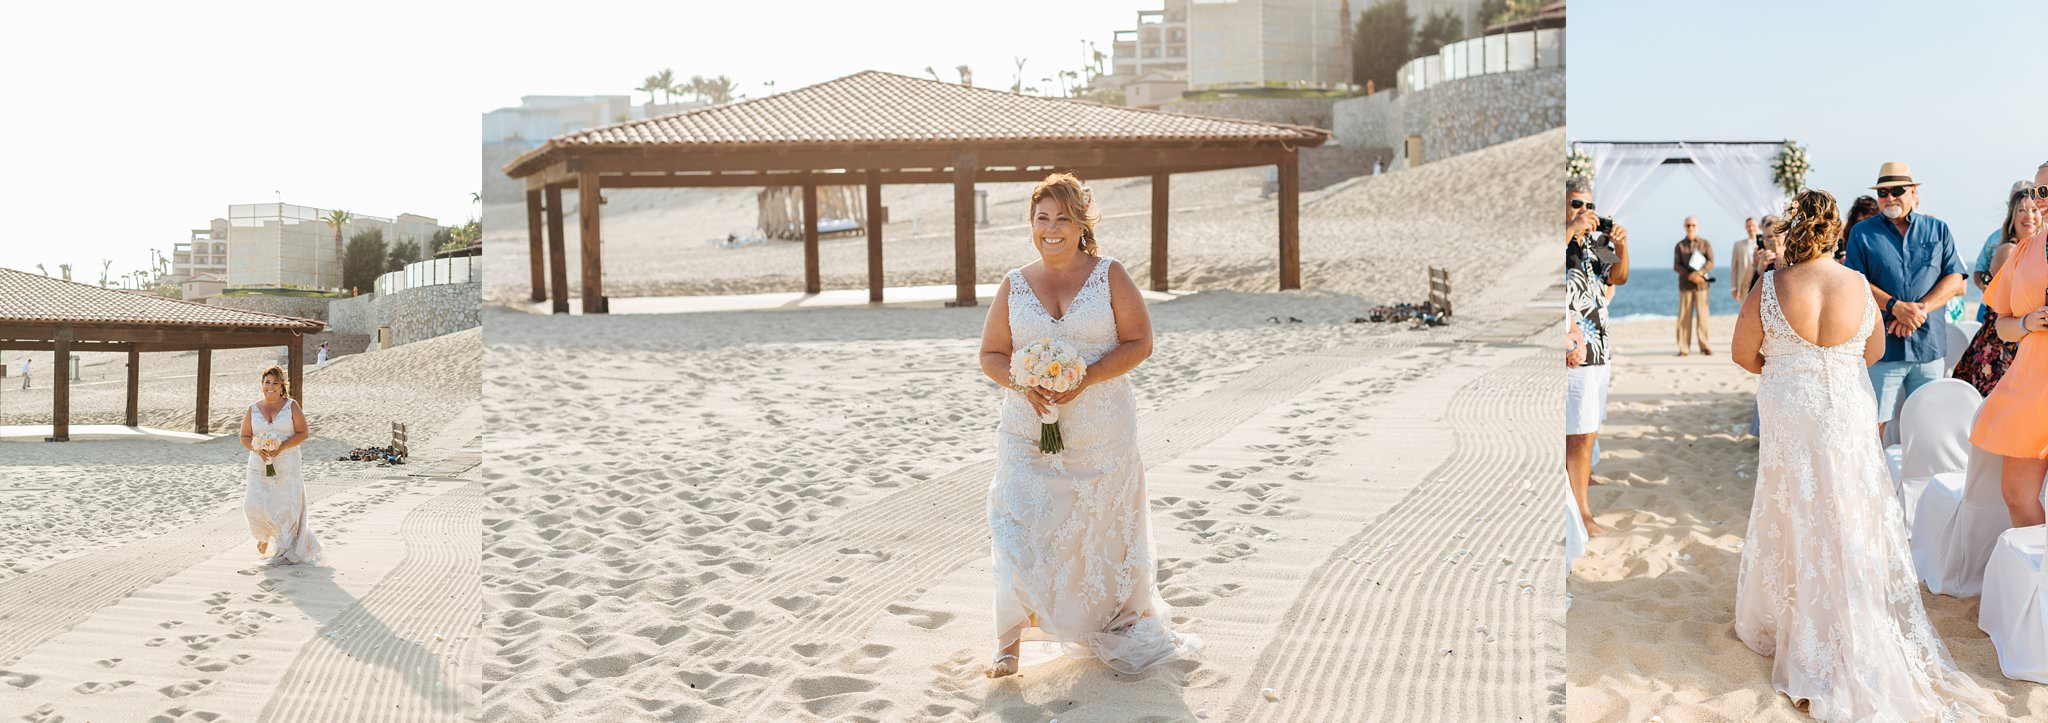 Bride walking down the aisle on the beach in Cabo - https://brittneyhannonphotography.com